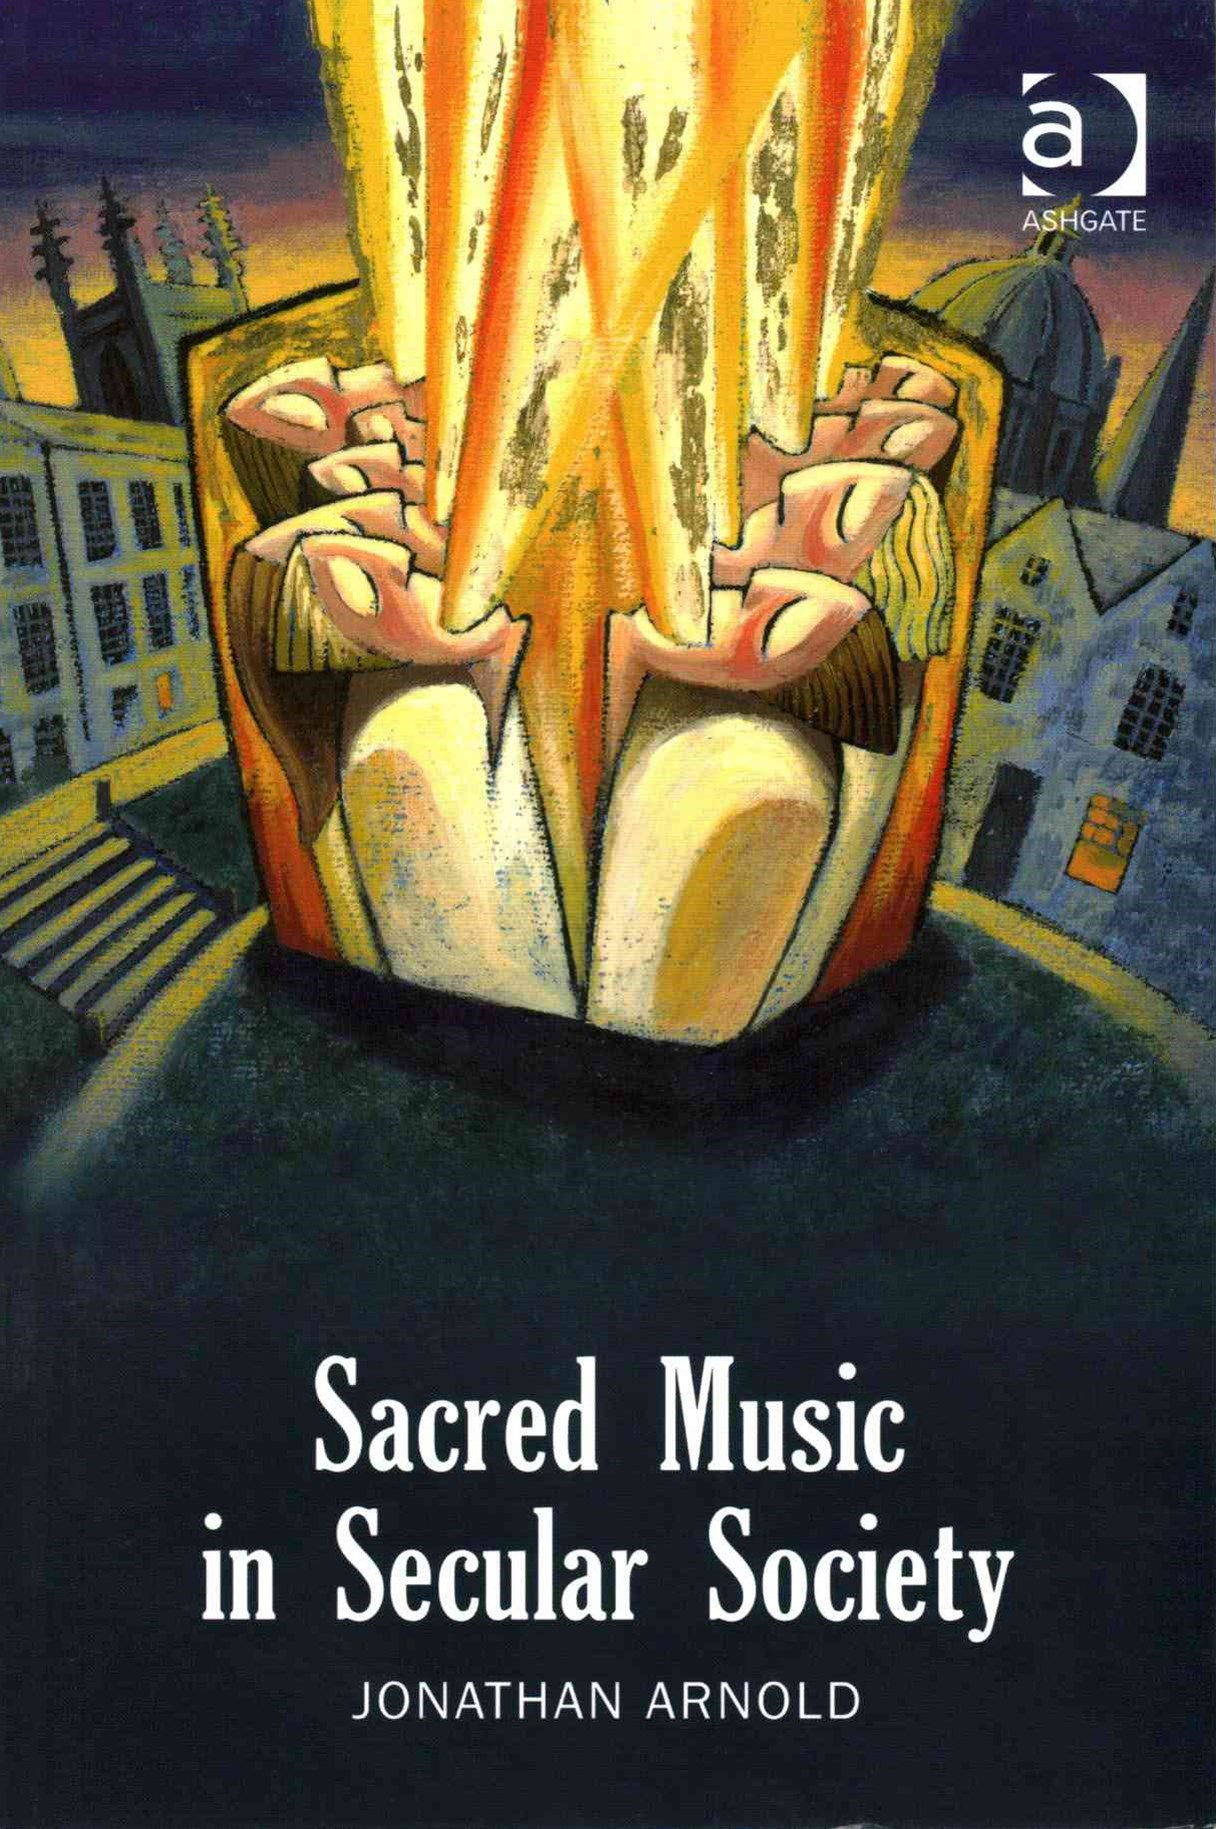 Sacred Music in Secular Society